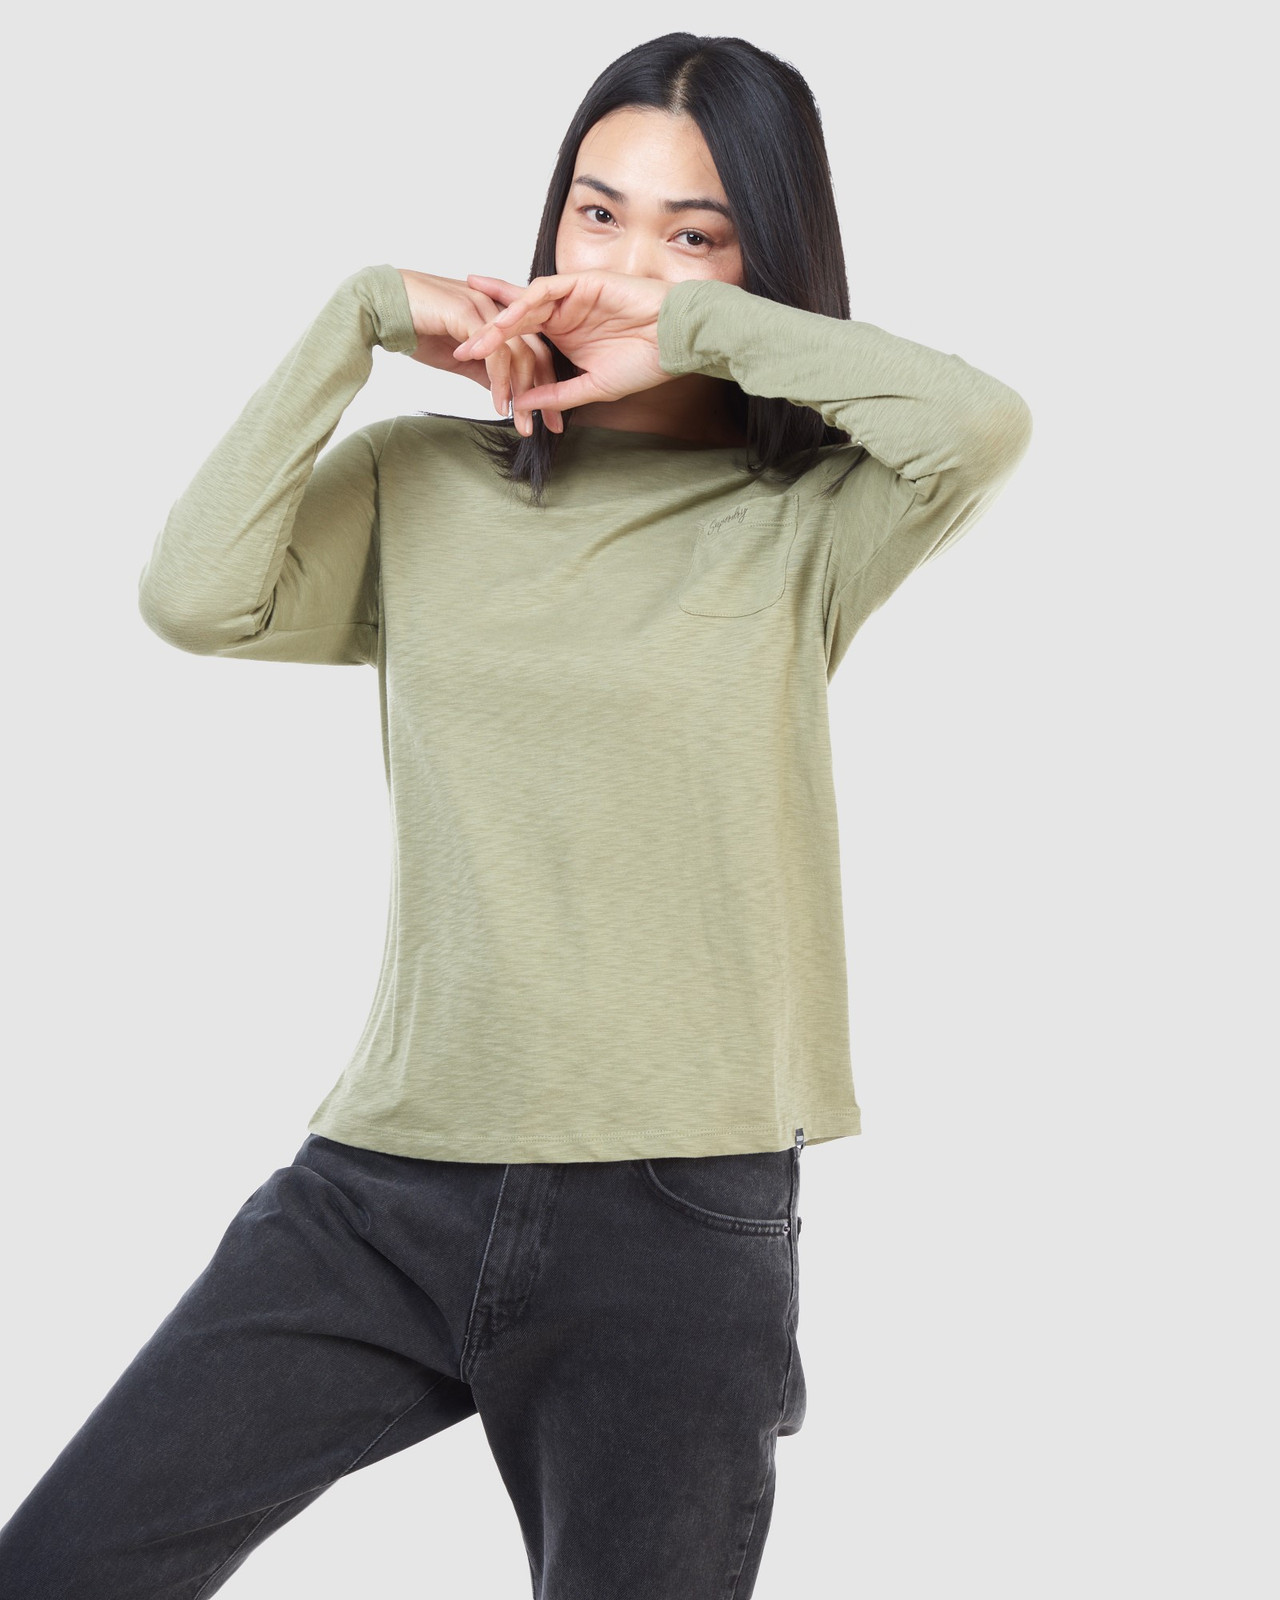 Superdry Womens SCRIPTED L/S CREW TOP Green Long Sleeve Top 2